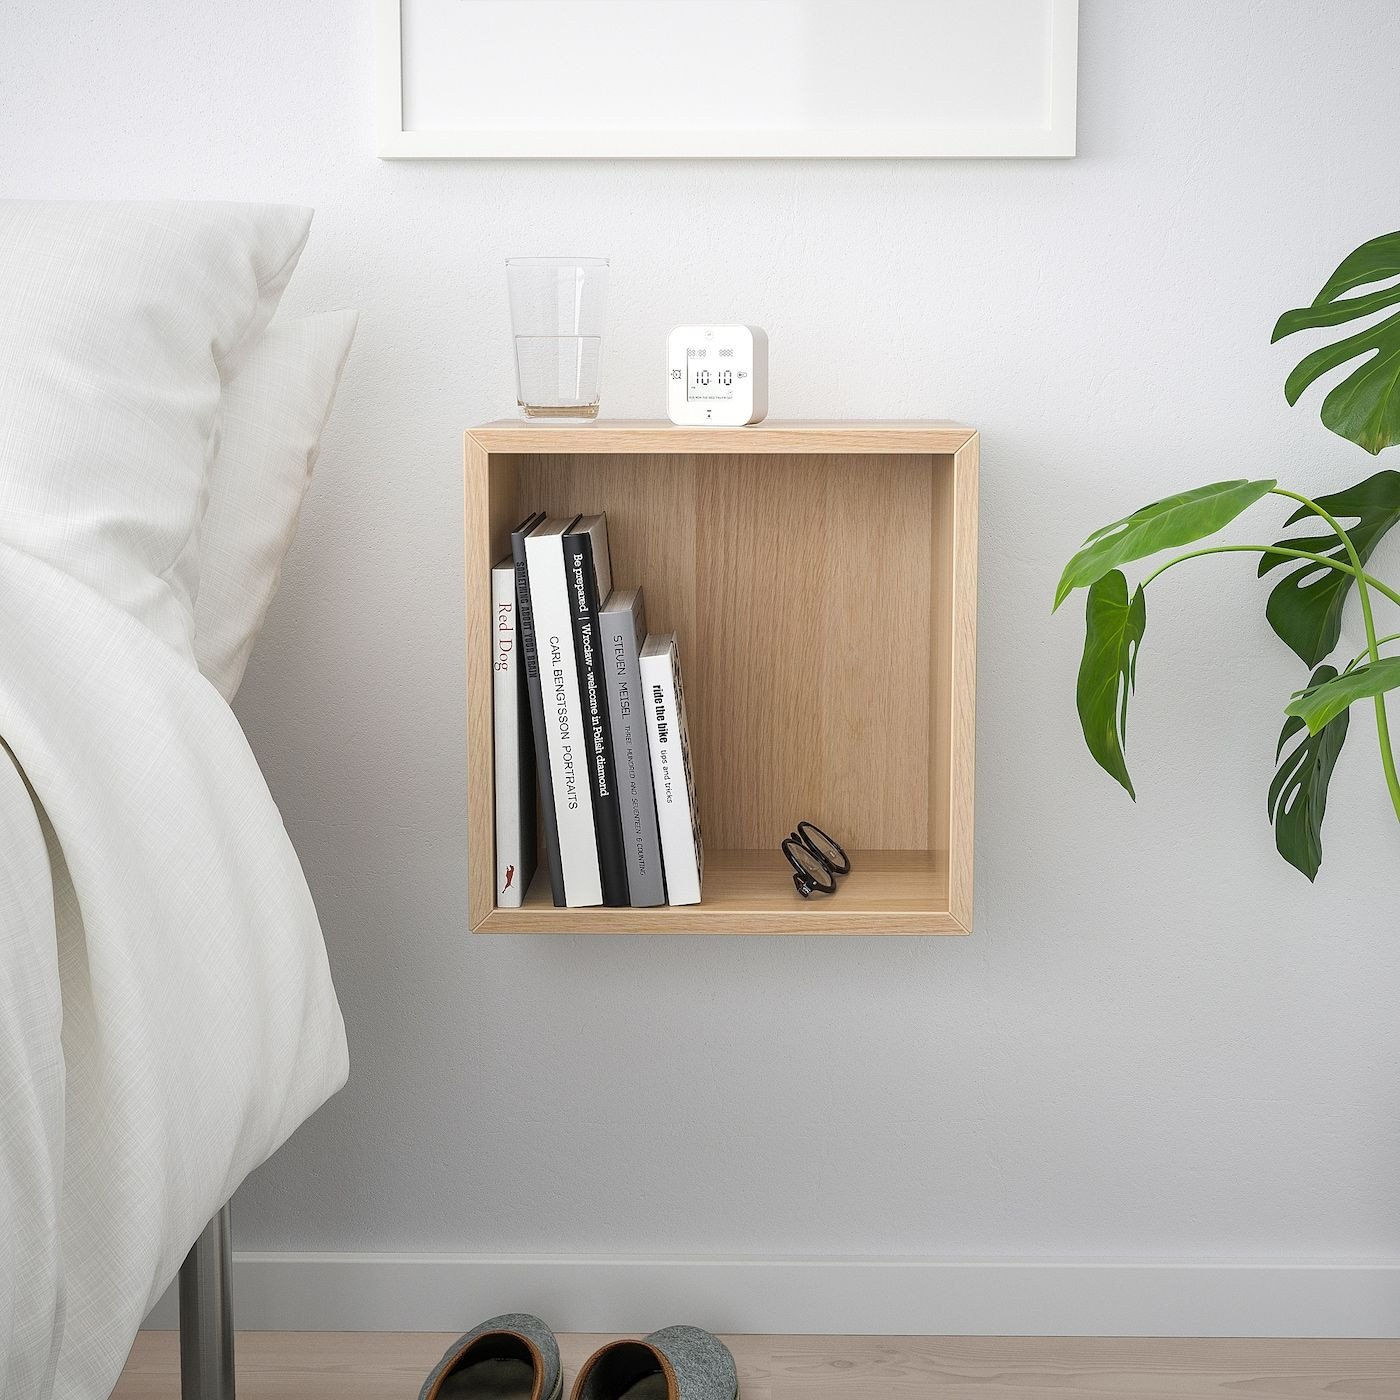 Small Shelves for Bedroom Inspirational Ikea Eket White Stained Oak Effect Wall Mounted Shelving